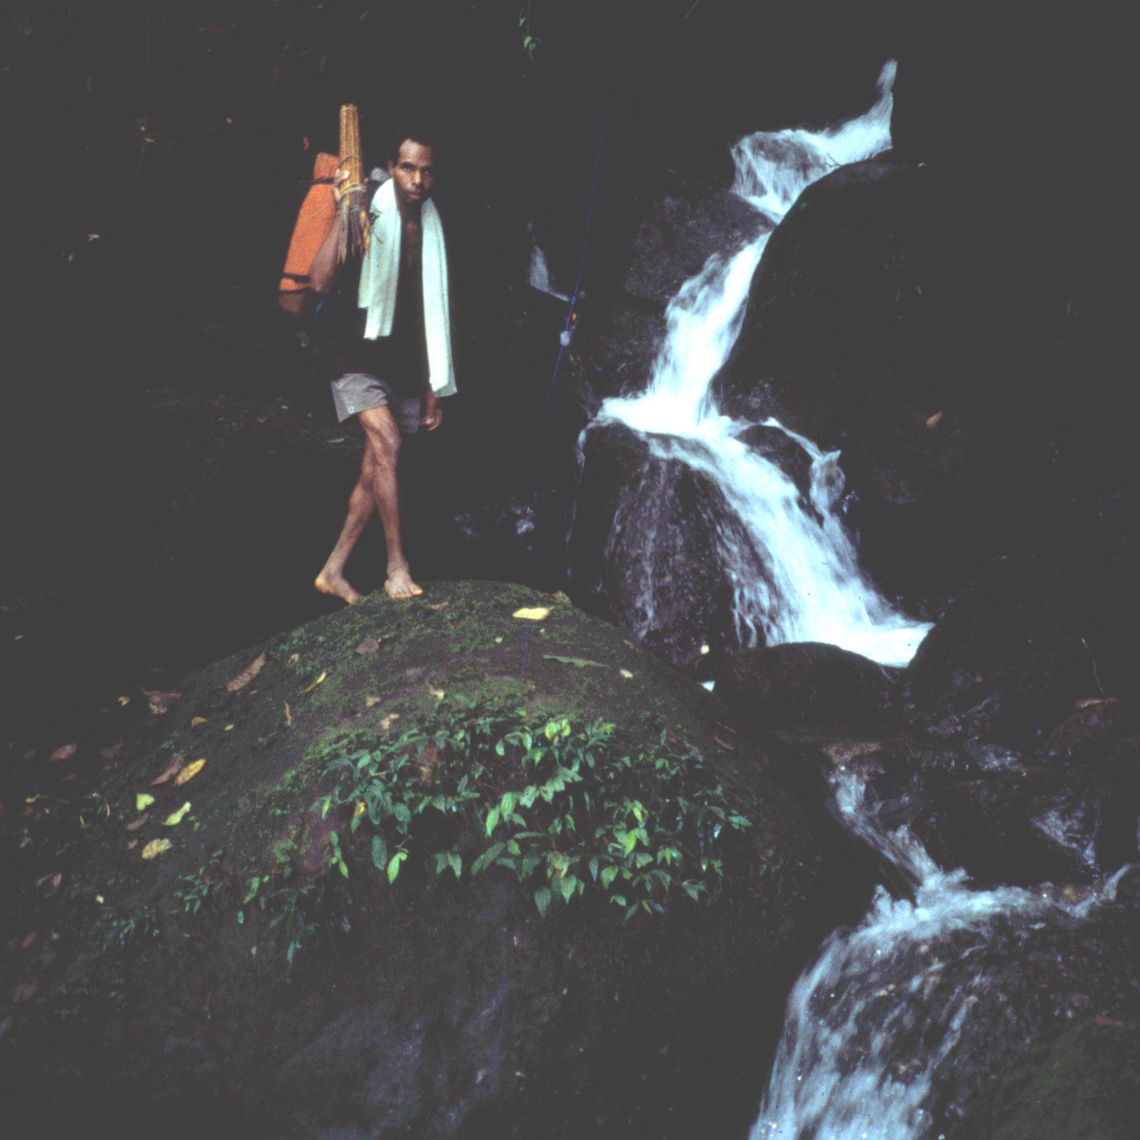 Raymond Kuaru On Boulder Descending Stream, On the Hunt for New Guinea Art